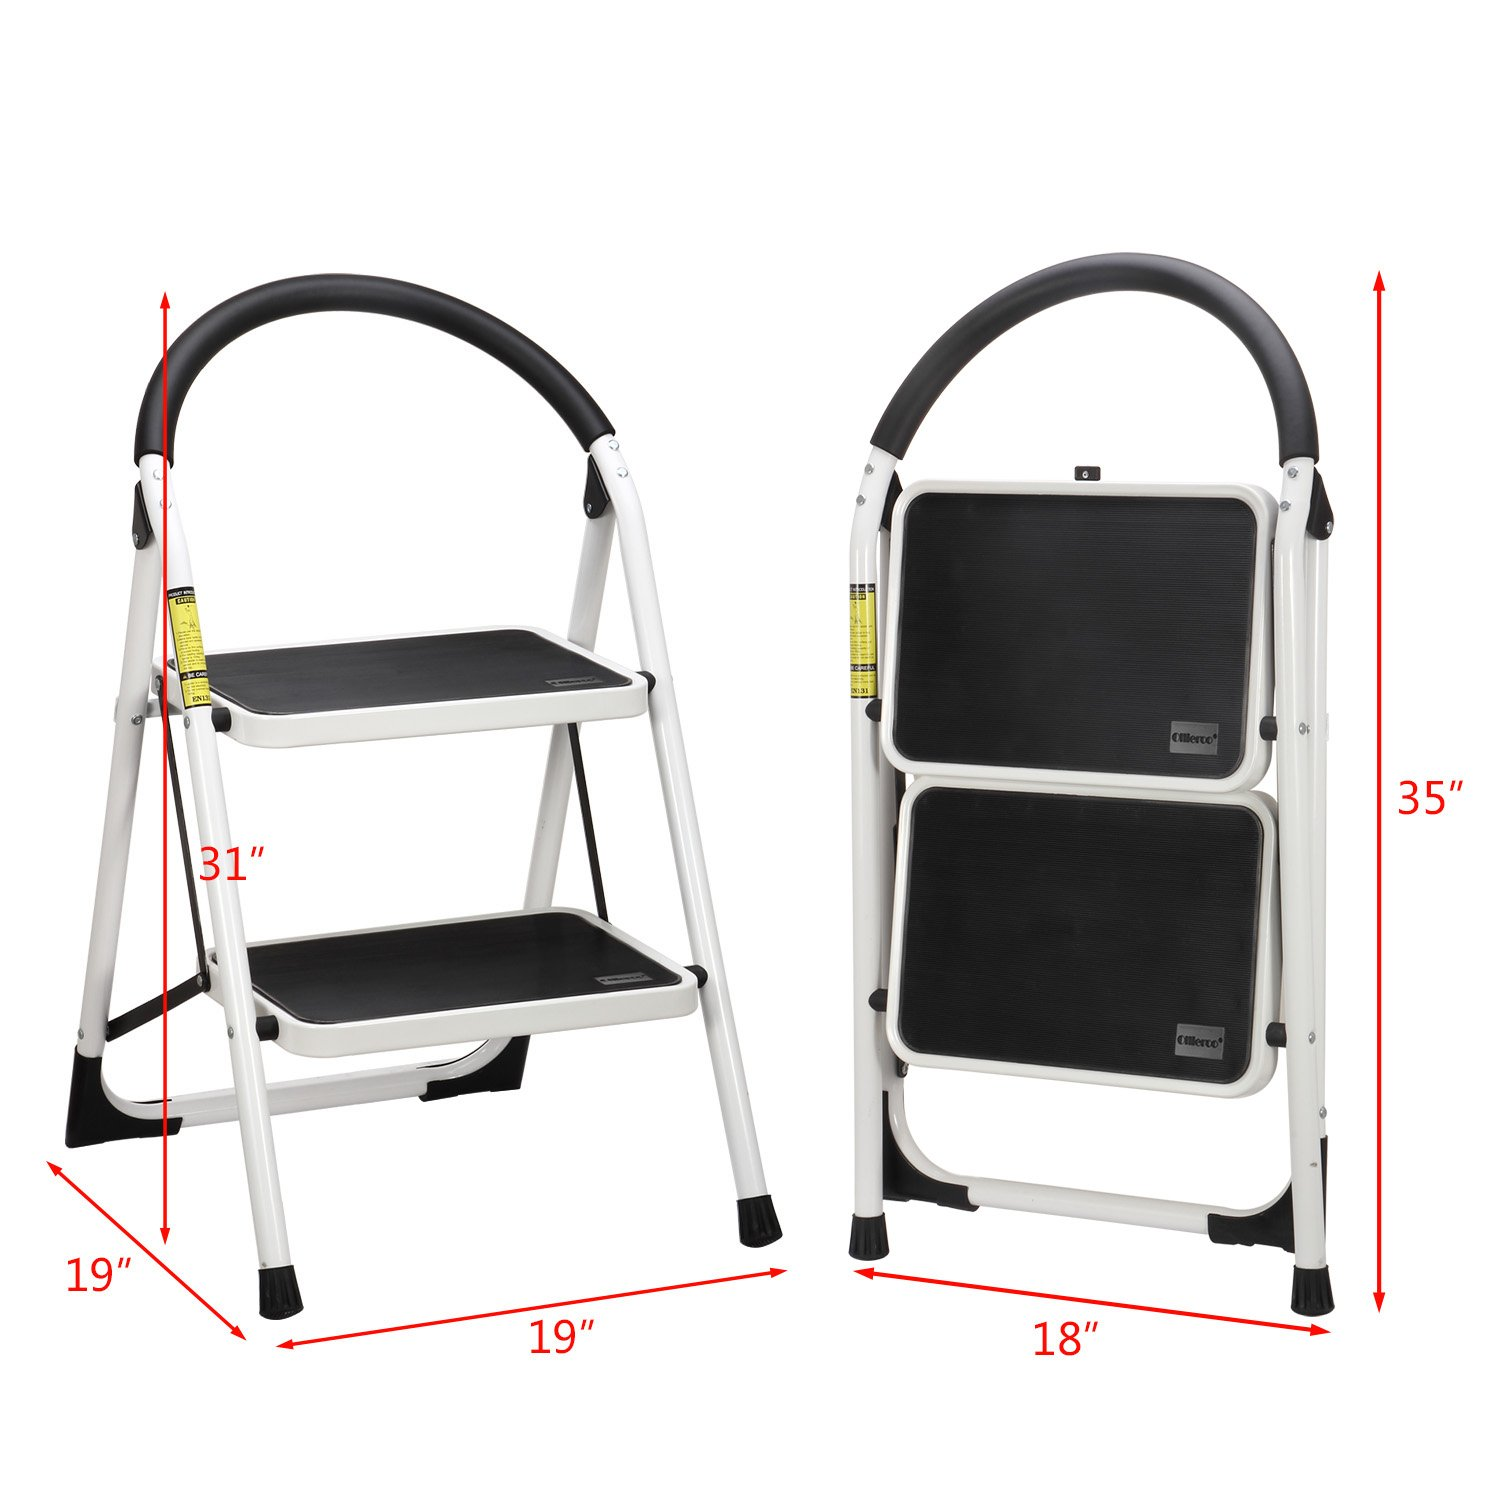 Ollieroo Step Stool EN131 Steel Folding 2 Step Ladder with Comfy Grip Handle Anti-slip Step Mon-marring Feet 330-pound Capacity White by Ollieroo (Image #5)